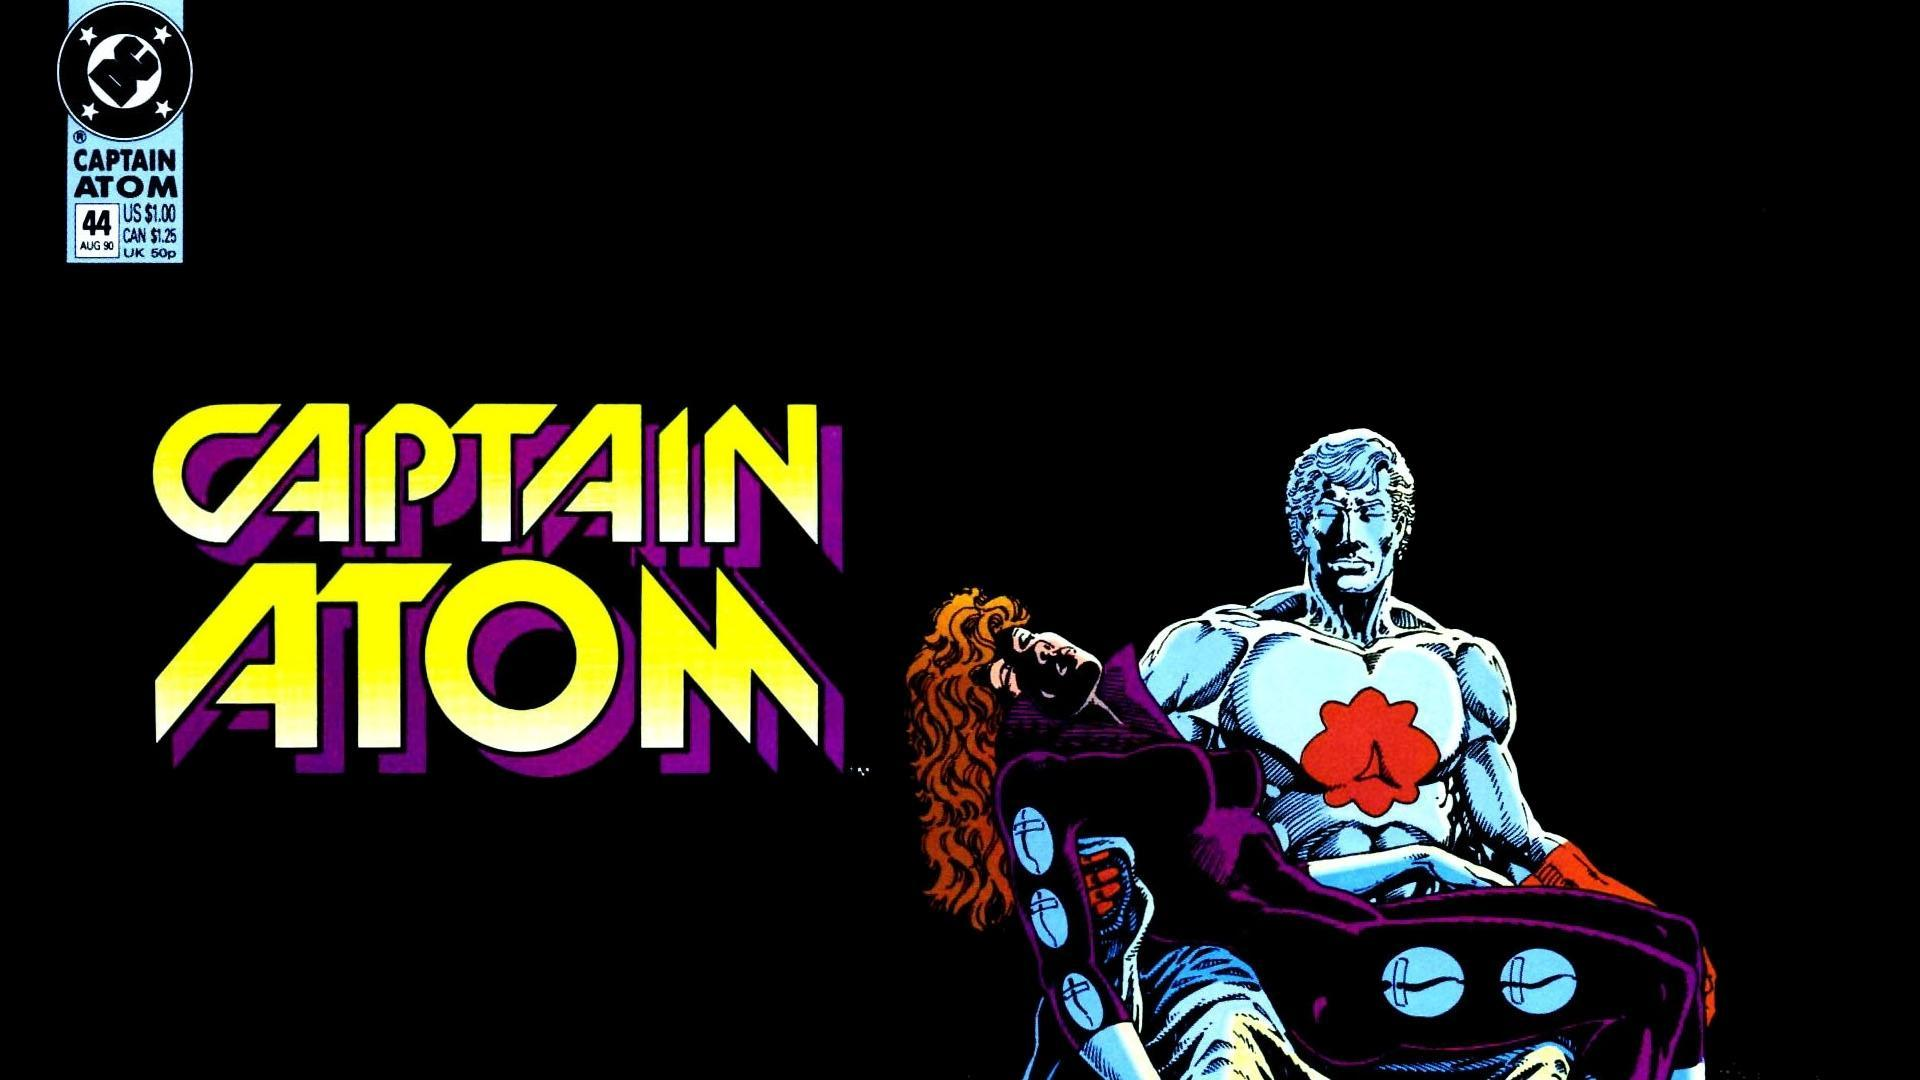 Captain Atom Cool Wallpapers Download